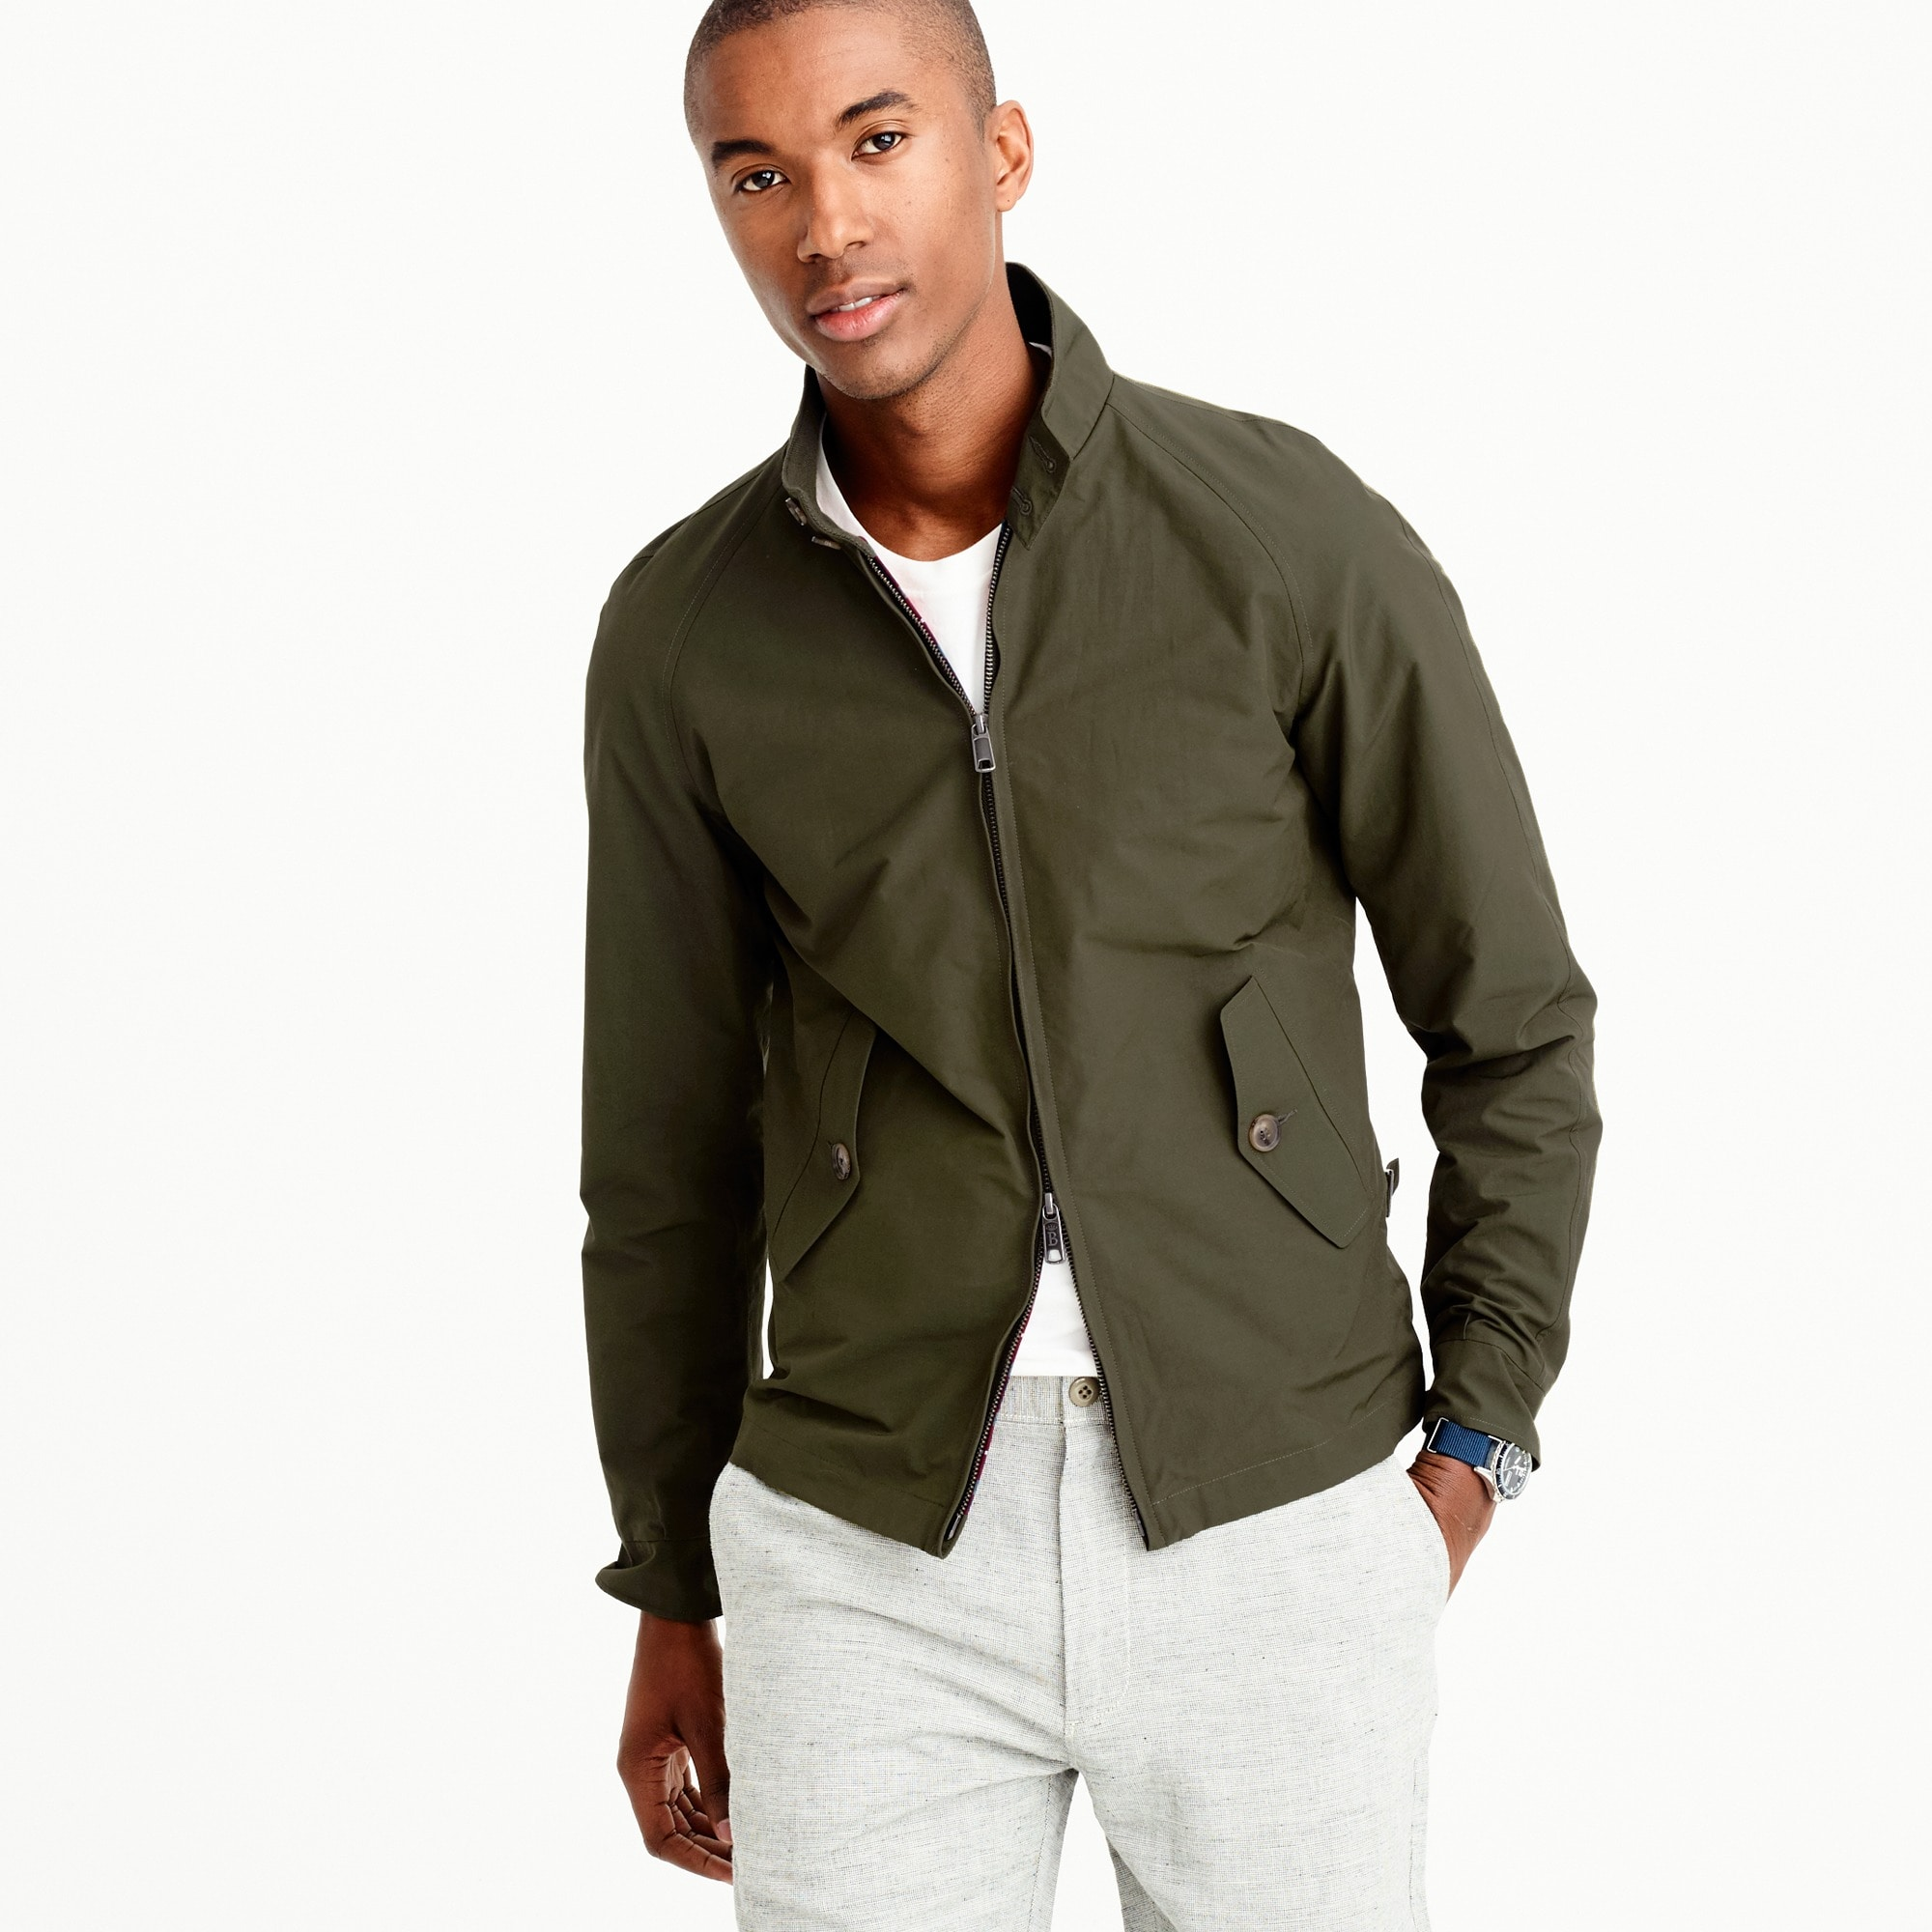 Baracuta® G4 jacket men j.crew in good company c